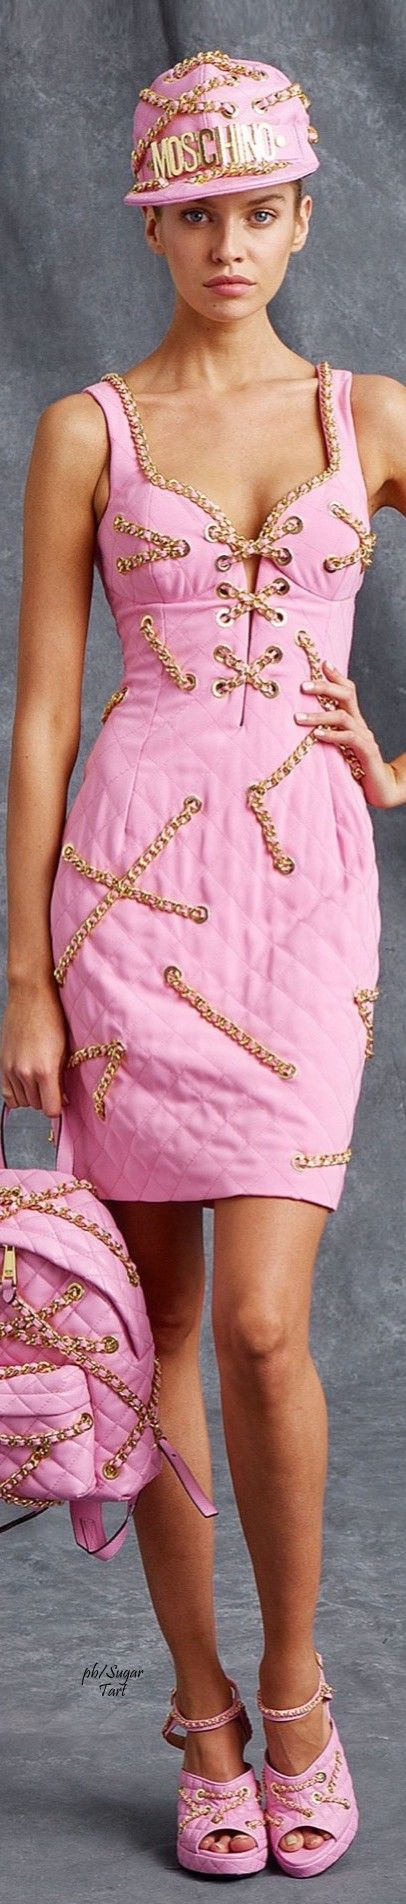 Moschino Resort 2016...... Somewhere along the design line, the chain was badly broken.